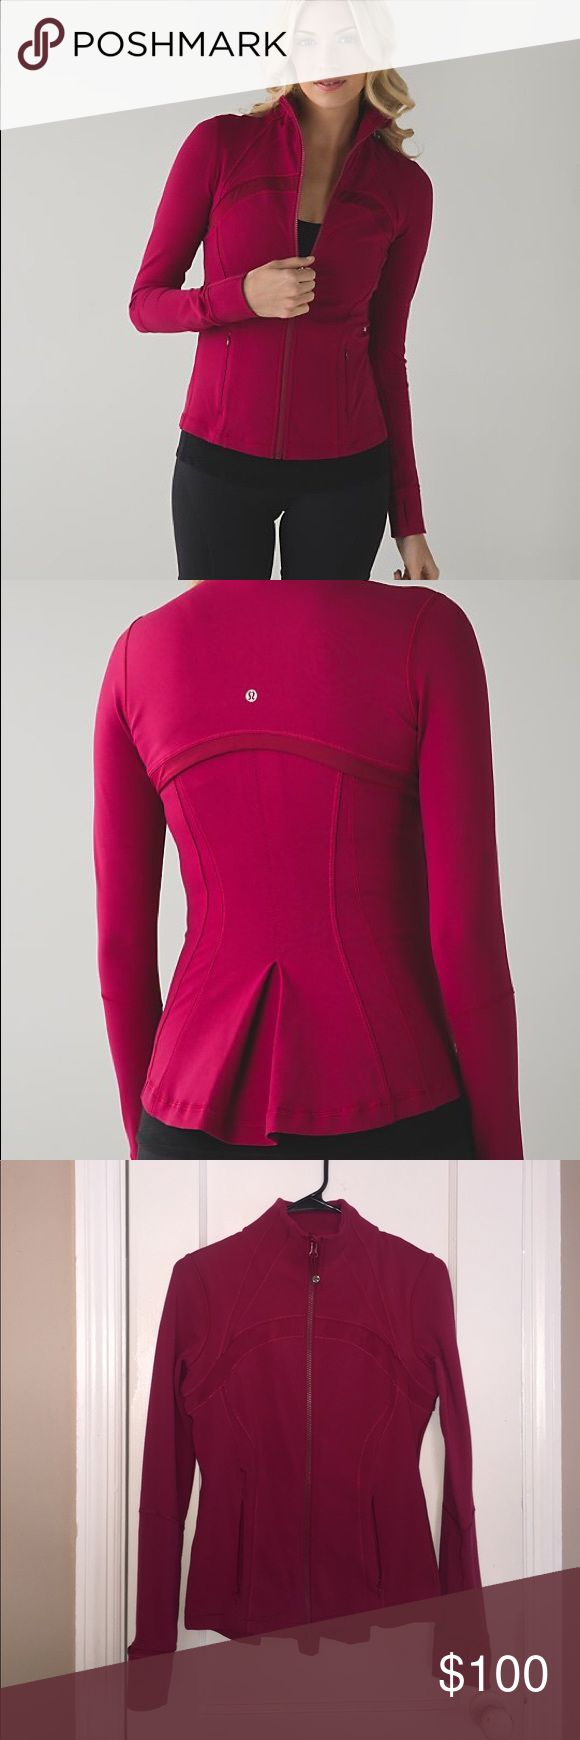 Lululemon Define Special Edition Shine On Jacket Special edition Define jacket in berry rumble pink. Cute bustle detail in back. Worn only a couple of times, practically new.  No signs of wear. lululemon athletica Jackets & Coats